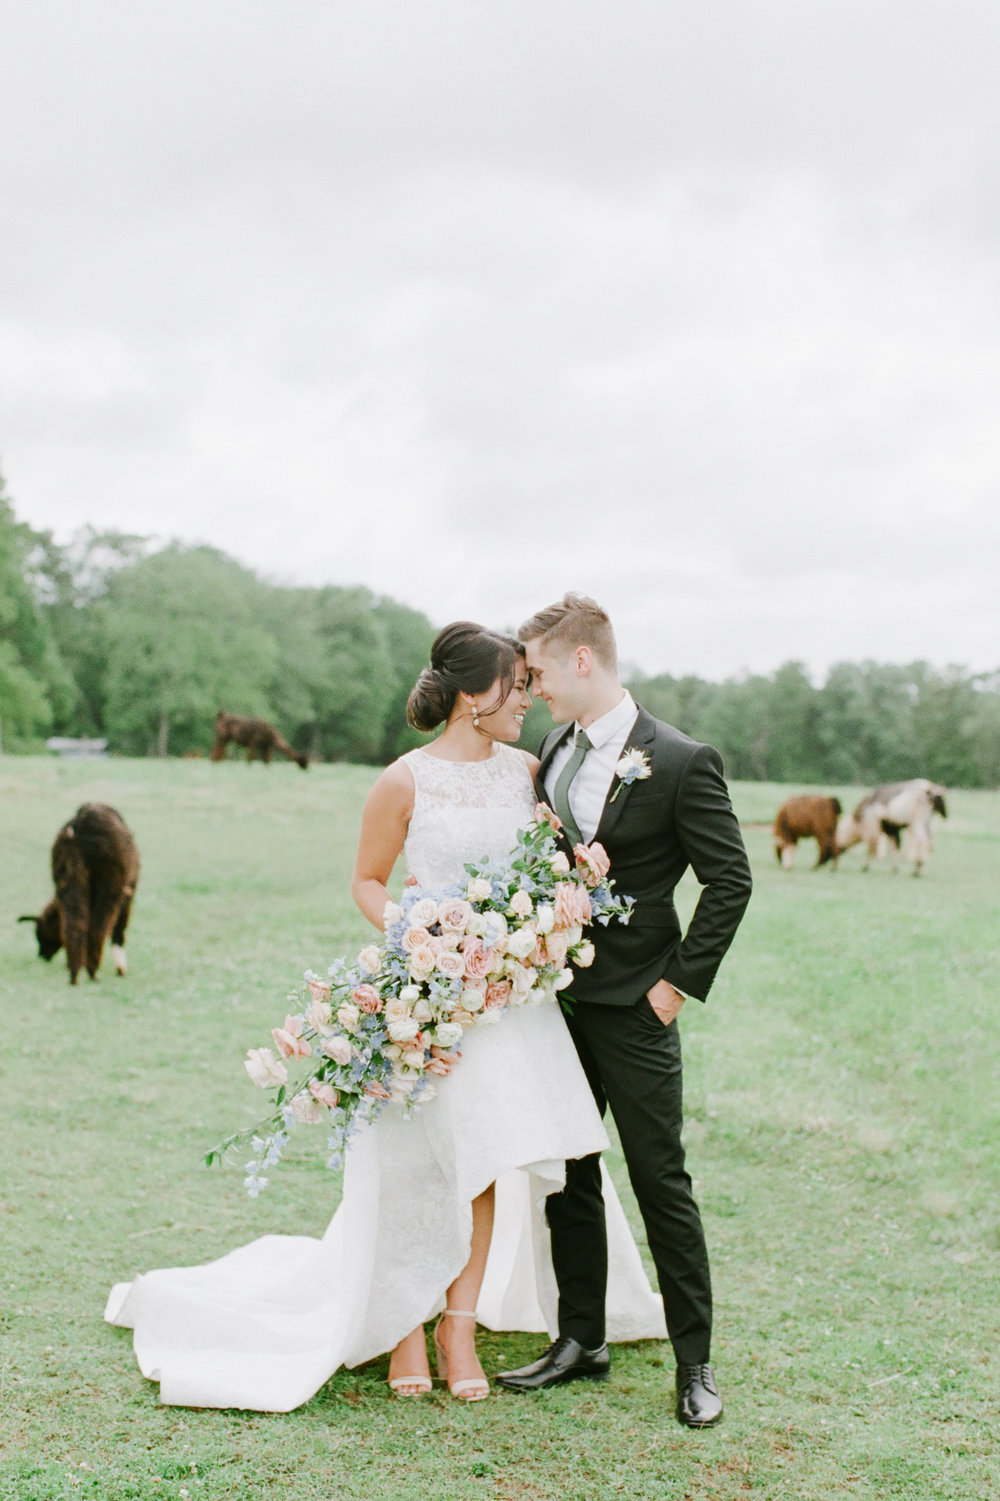 nj_alpaca-farm_wedding_inspiration-46.jpg